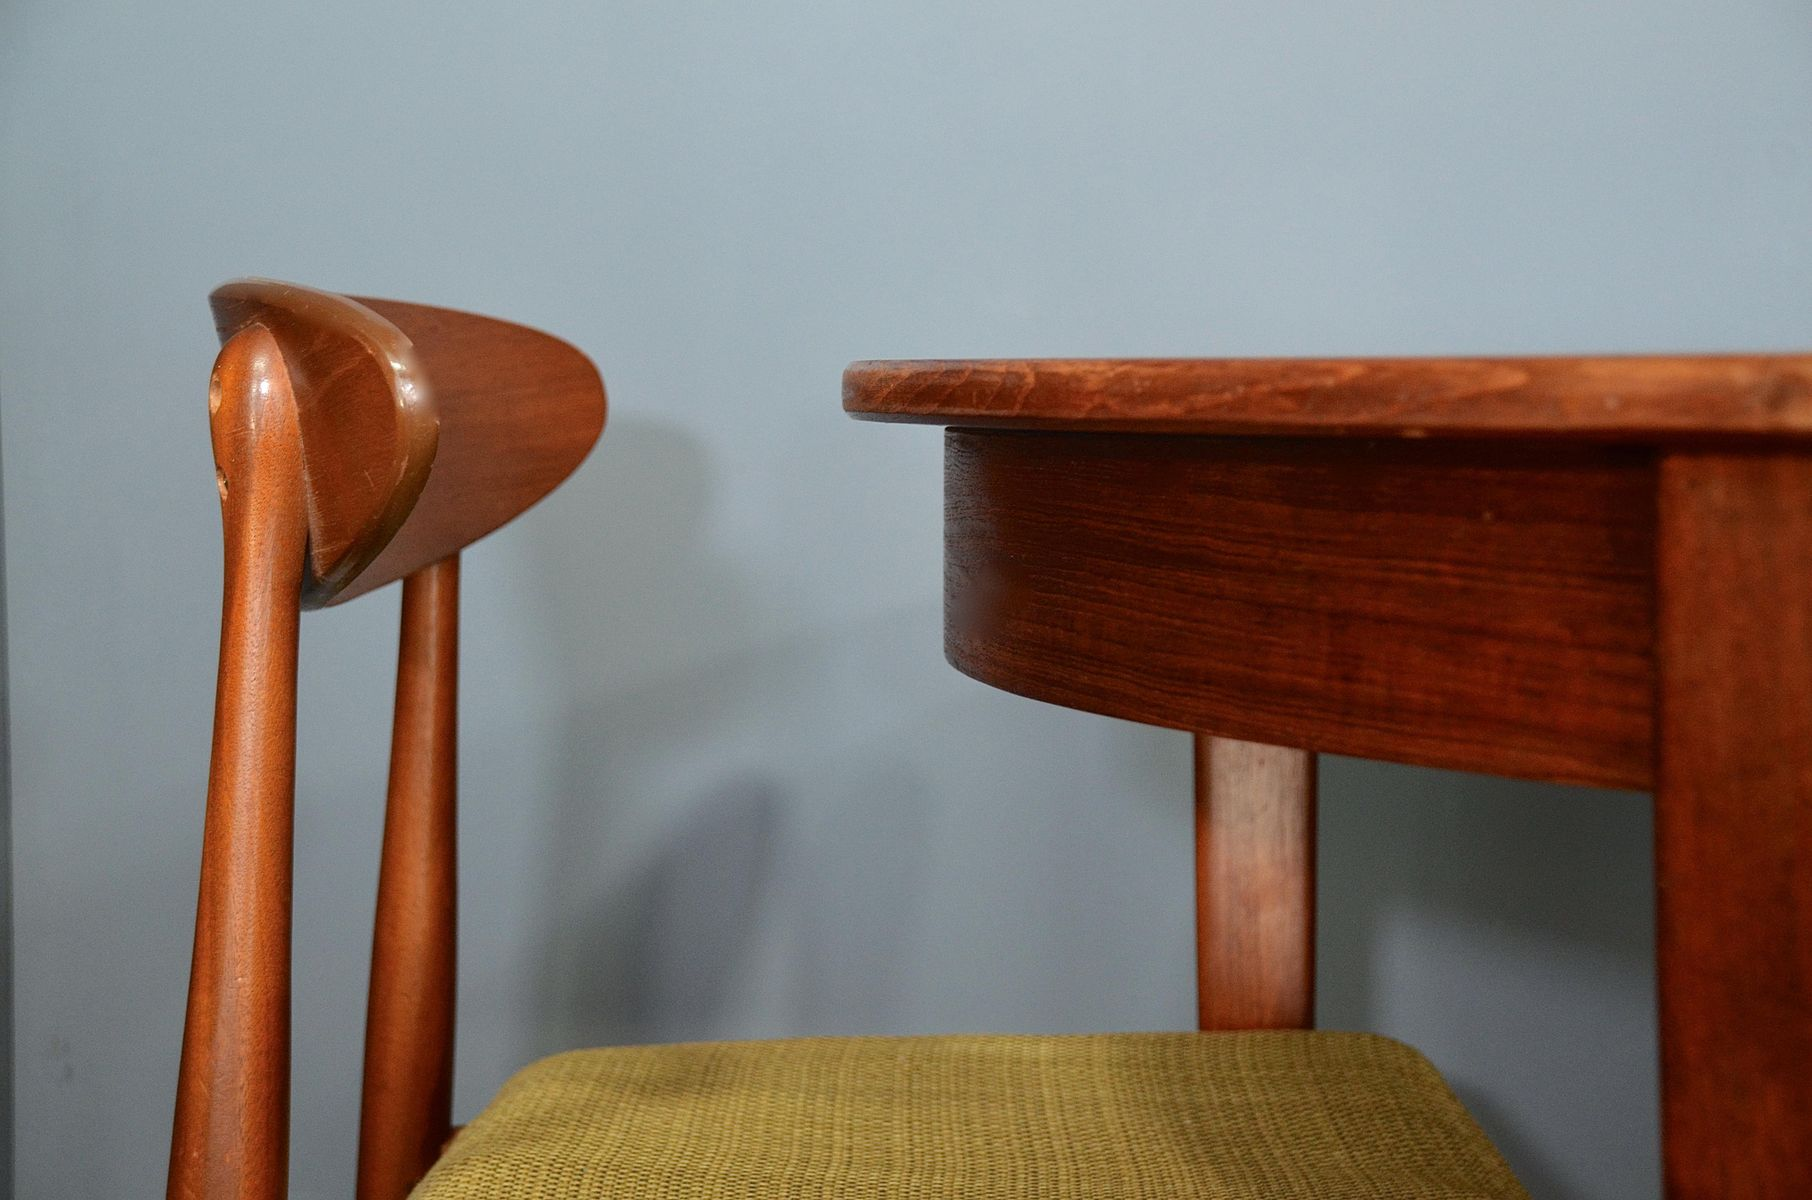 Vintage Danish Extendable Teak Table with Chairs, 1960s for sale at ...